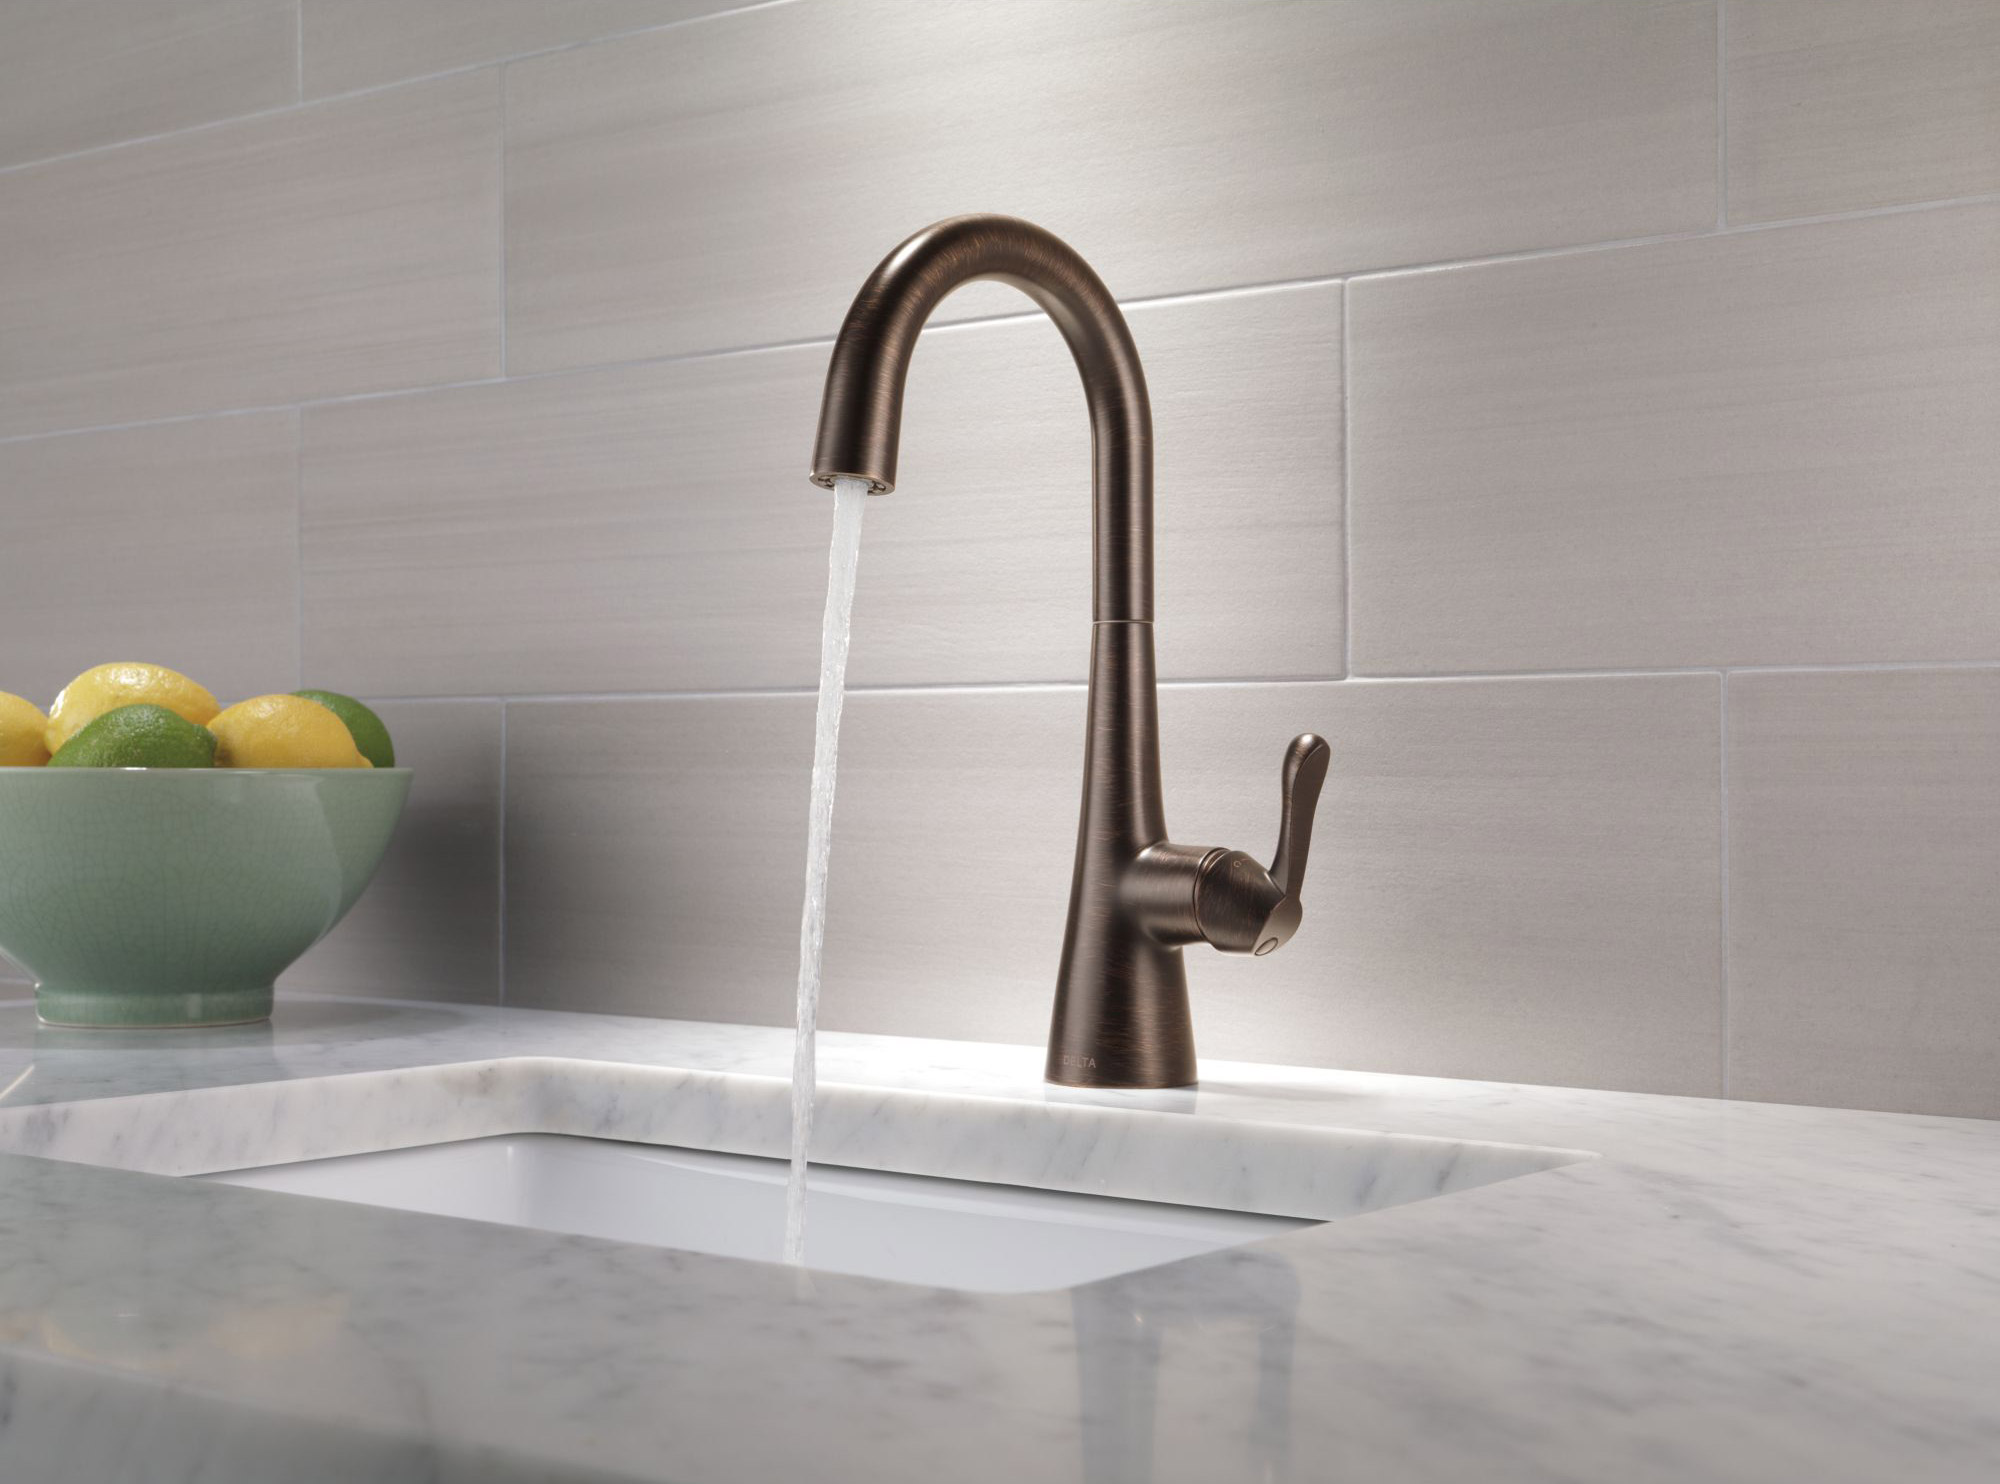 Beautiful They Range From A Complete Home Remodel, Two Commercial Bathroom Updates, Repair And Replacement Of  Licensed In All Cities Within A 50 Mile Radius Of Kansas City Senior And Military Discounts A Service Driven CompanyCompetive